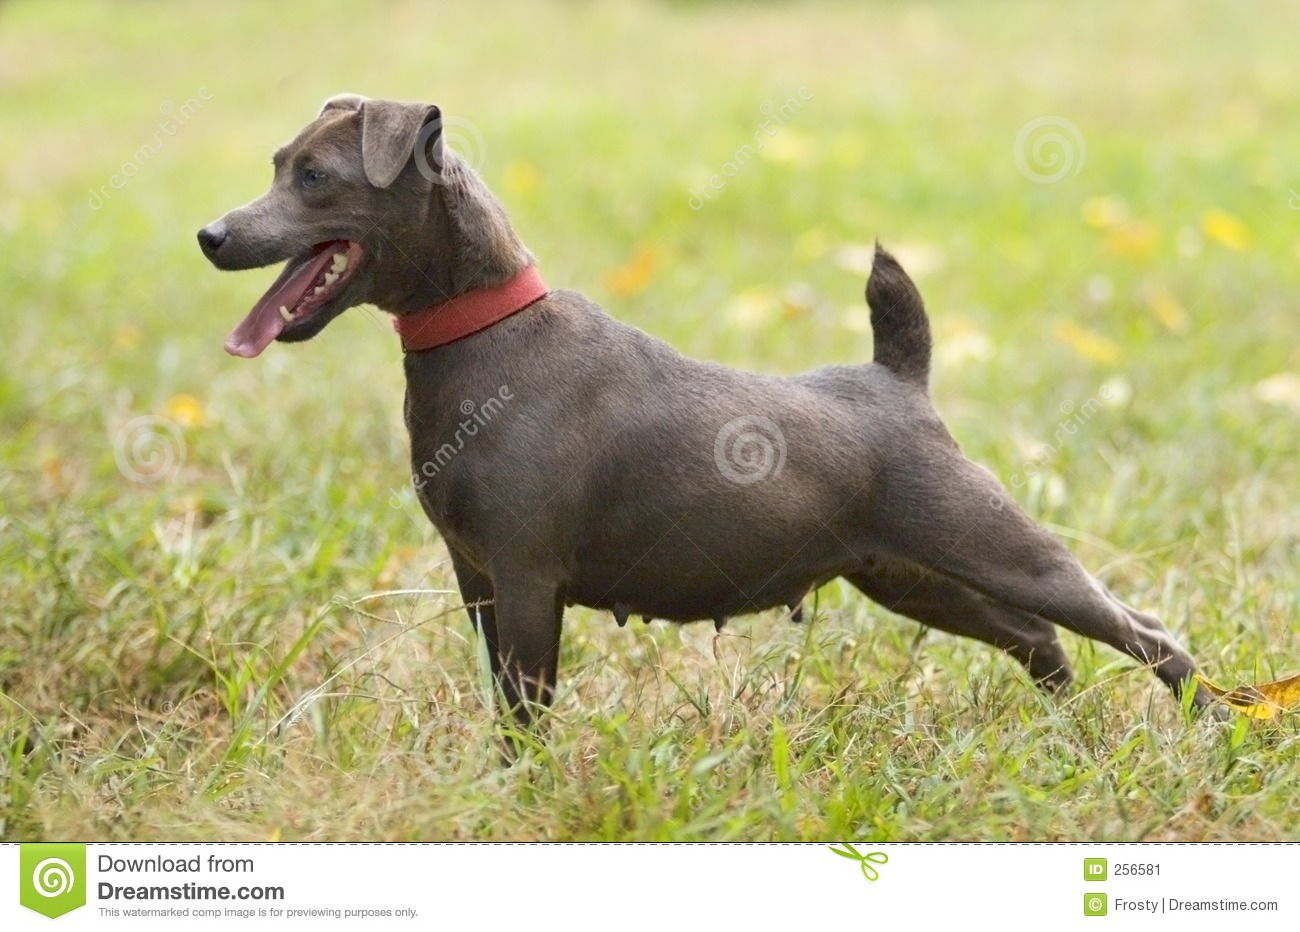 Patterdale Terrier Stock Image - Image: 256581